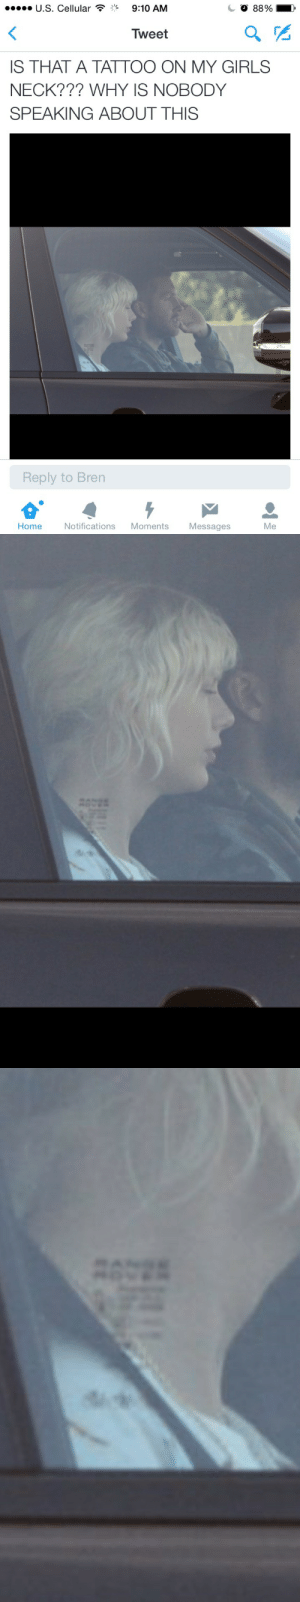 tayalongwithme:  newromanticsinnewyorkportugal:  screamedsooloud:  longasilives:  I love Taylor's new Range Rover tattoo  so grunge, vey hardcore  It looks so good on her  I HAVEN'T LAUGHED THIS HARD IN SO LONG : U.S. Cellular  9:10 AM  O 88%  Tweet  IS THAT A TATTOO ON MY GIRLS  NECK??? WHY IS NOBODY  SPEAKING ABOUT THIS  Reply to Bren  Hom  Notifications Moments  Messages  Me tayalongwithme:  newromanticsinnewyorkportugal:  screamedsooloud:  longasilives:  I love Taylor's new Range Rover tattoo  so grunge, vey hardcore  It looks so good on her  I HAVEN'T LAUGHED THIS HARD IN SO LONG